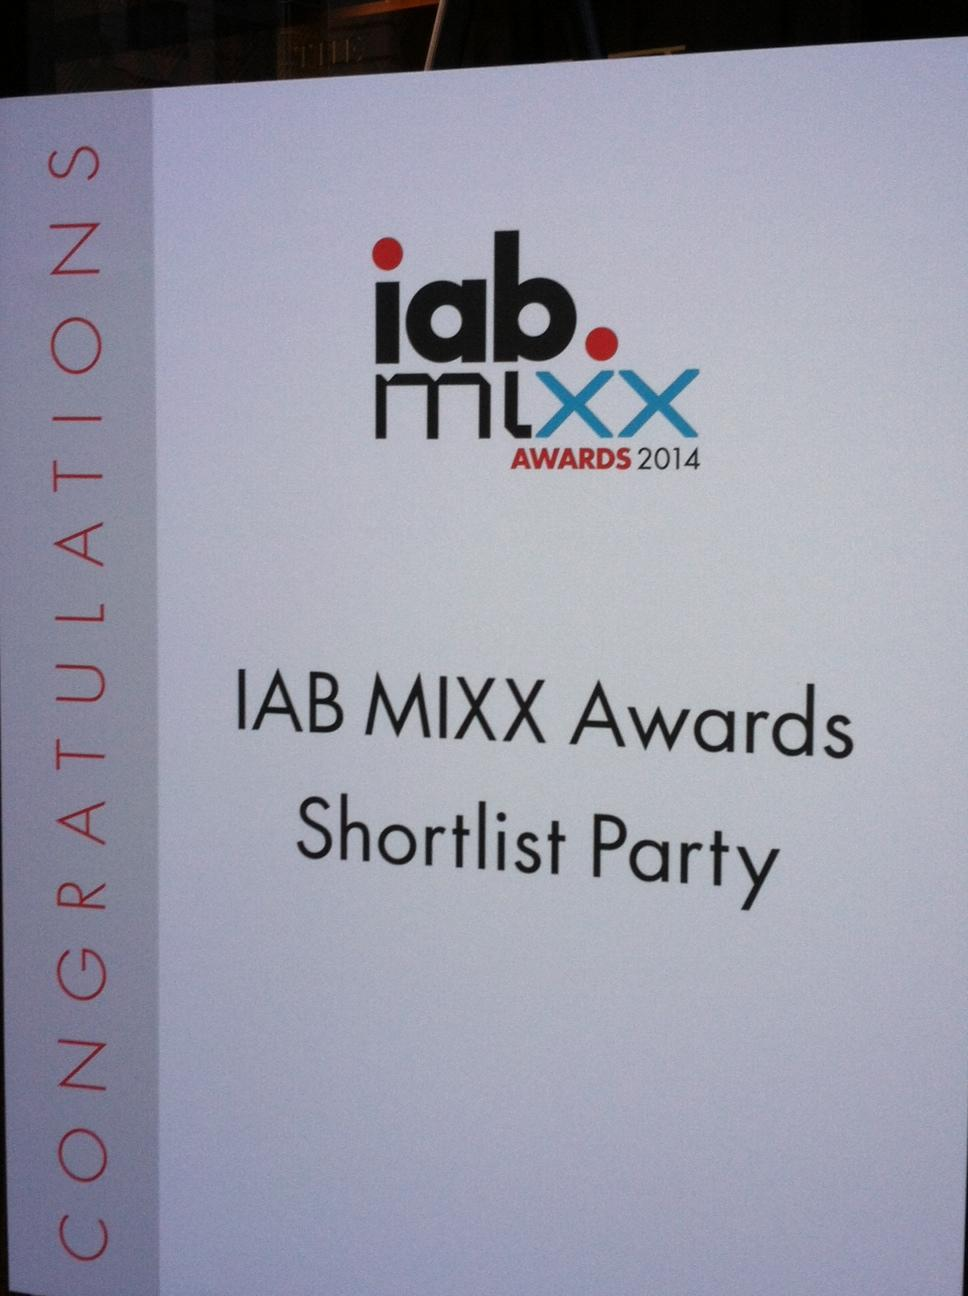 UM & #J3 have been shortlisted for the IAB @mixxawards! Campaigns for @Chrysler, @JNJNews & @SonyPictures. http://t.co/Dea8A53bUC